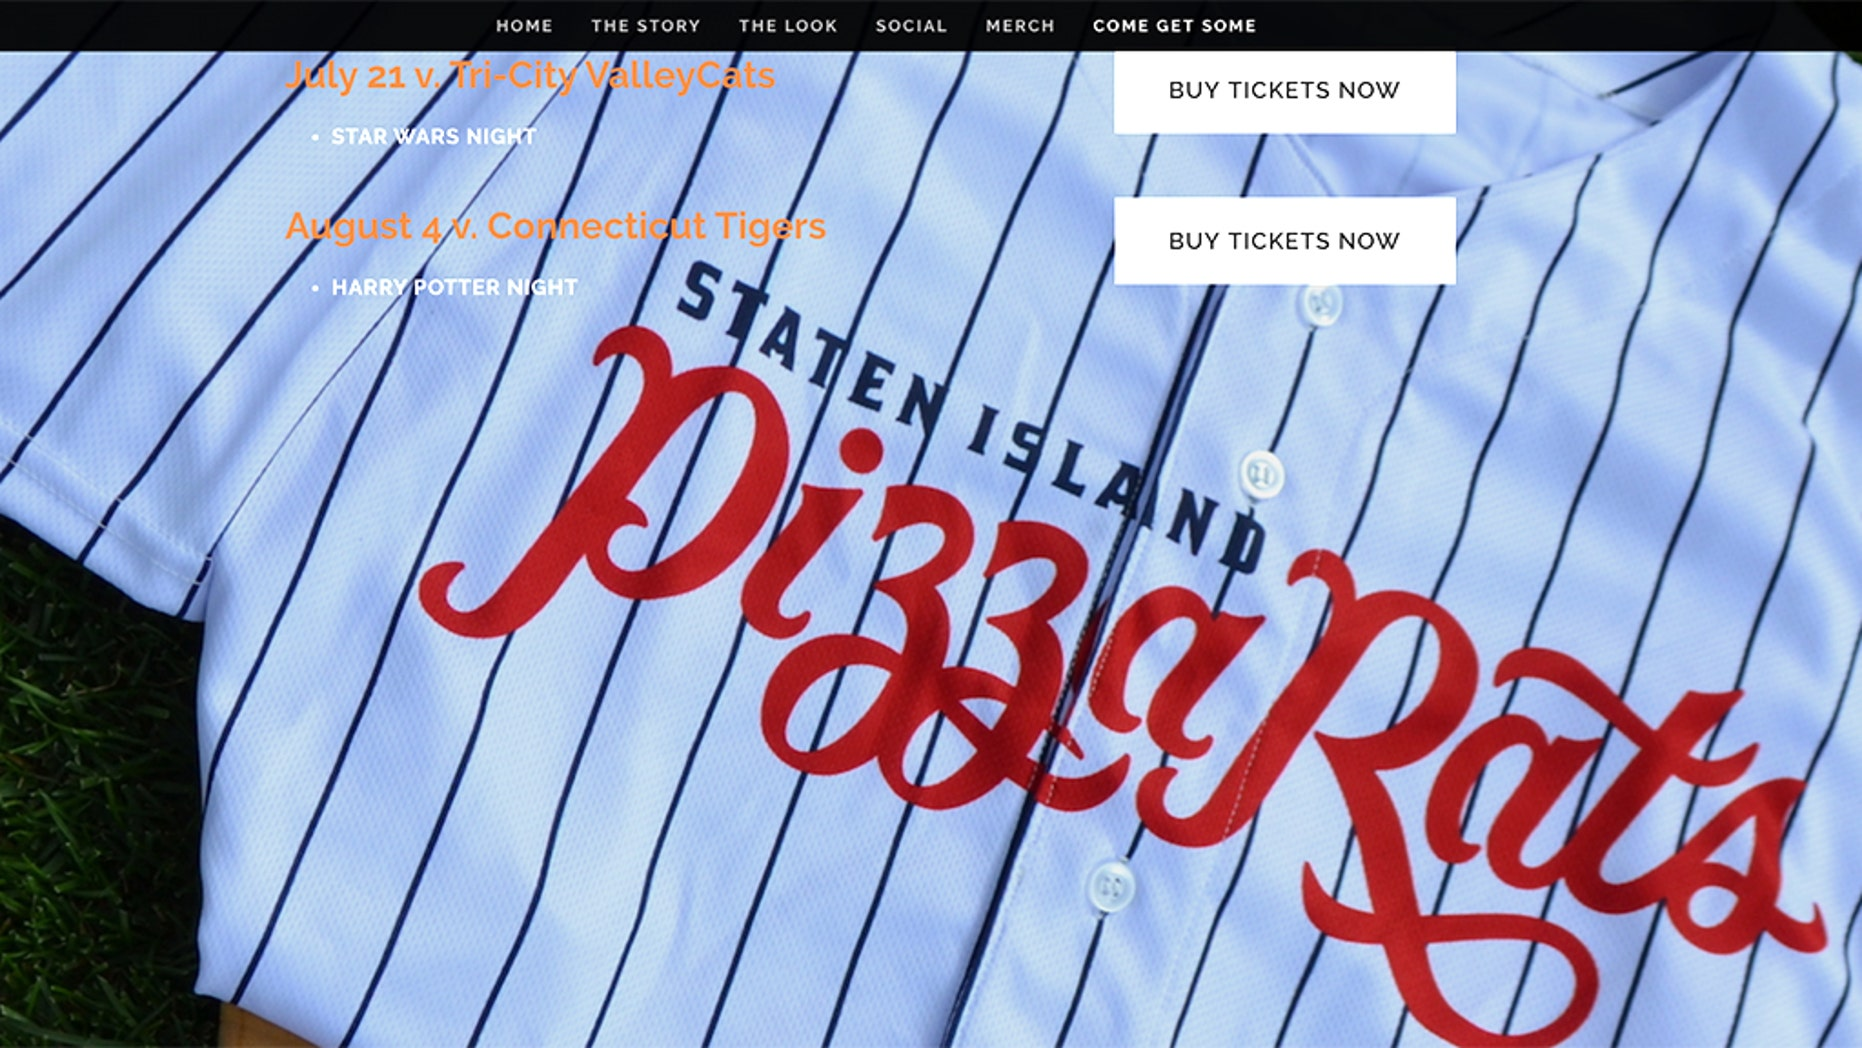 The Staten Island Yankees are finally making good on a fan vote from 2016.